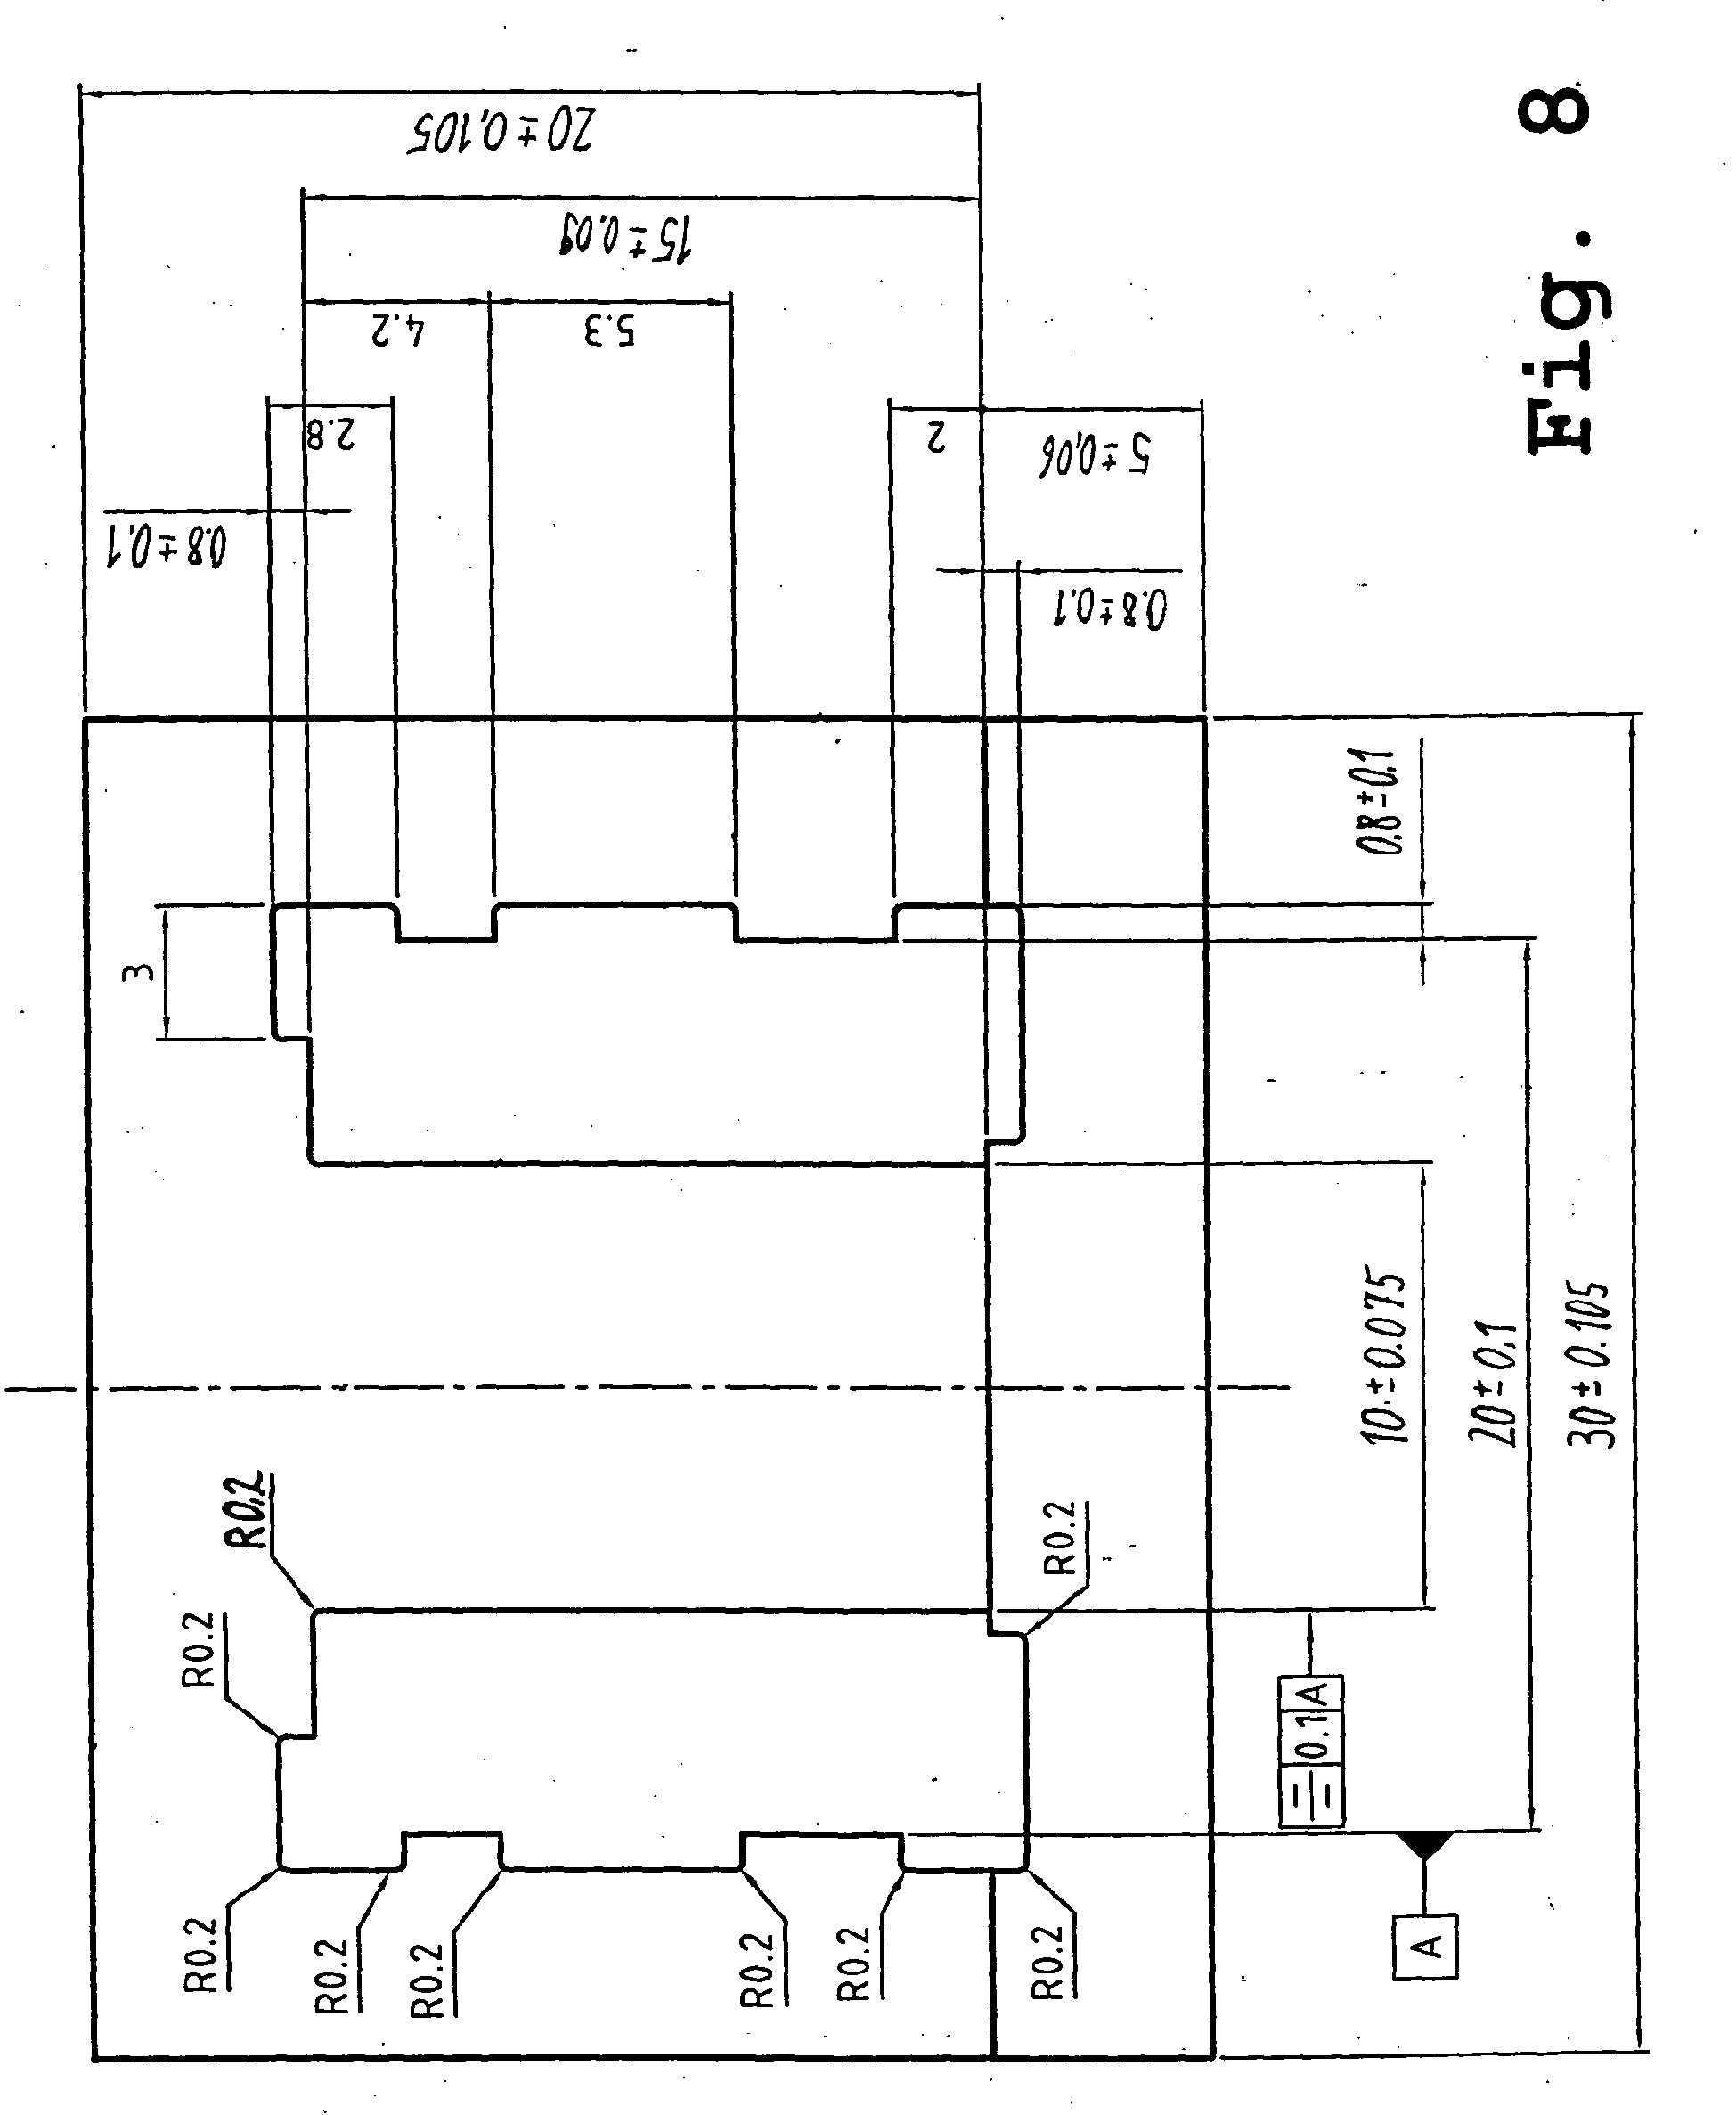 Patent Ep1655747a2 Cut Of Sheet Metal For A Laminated